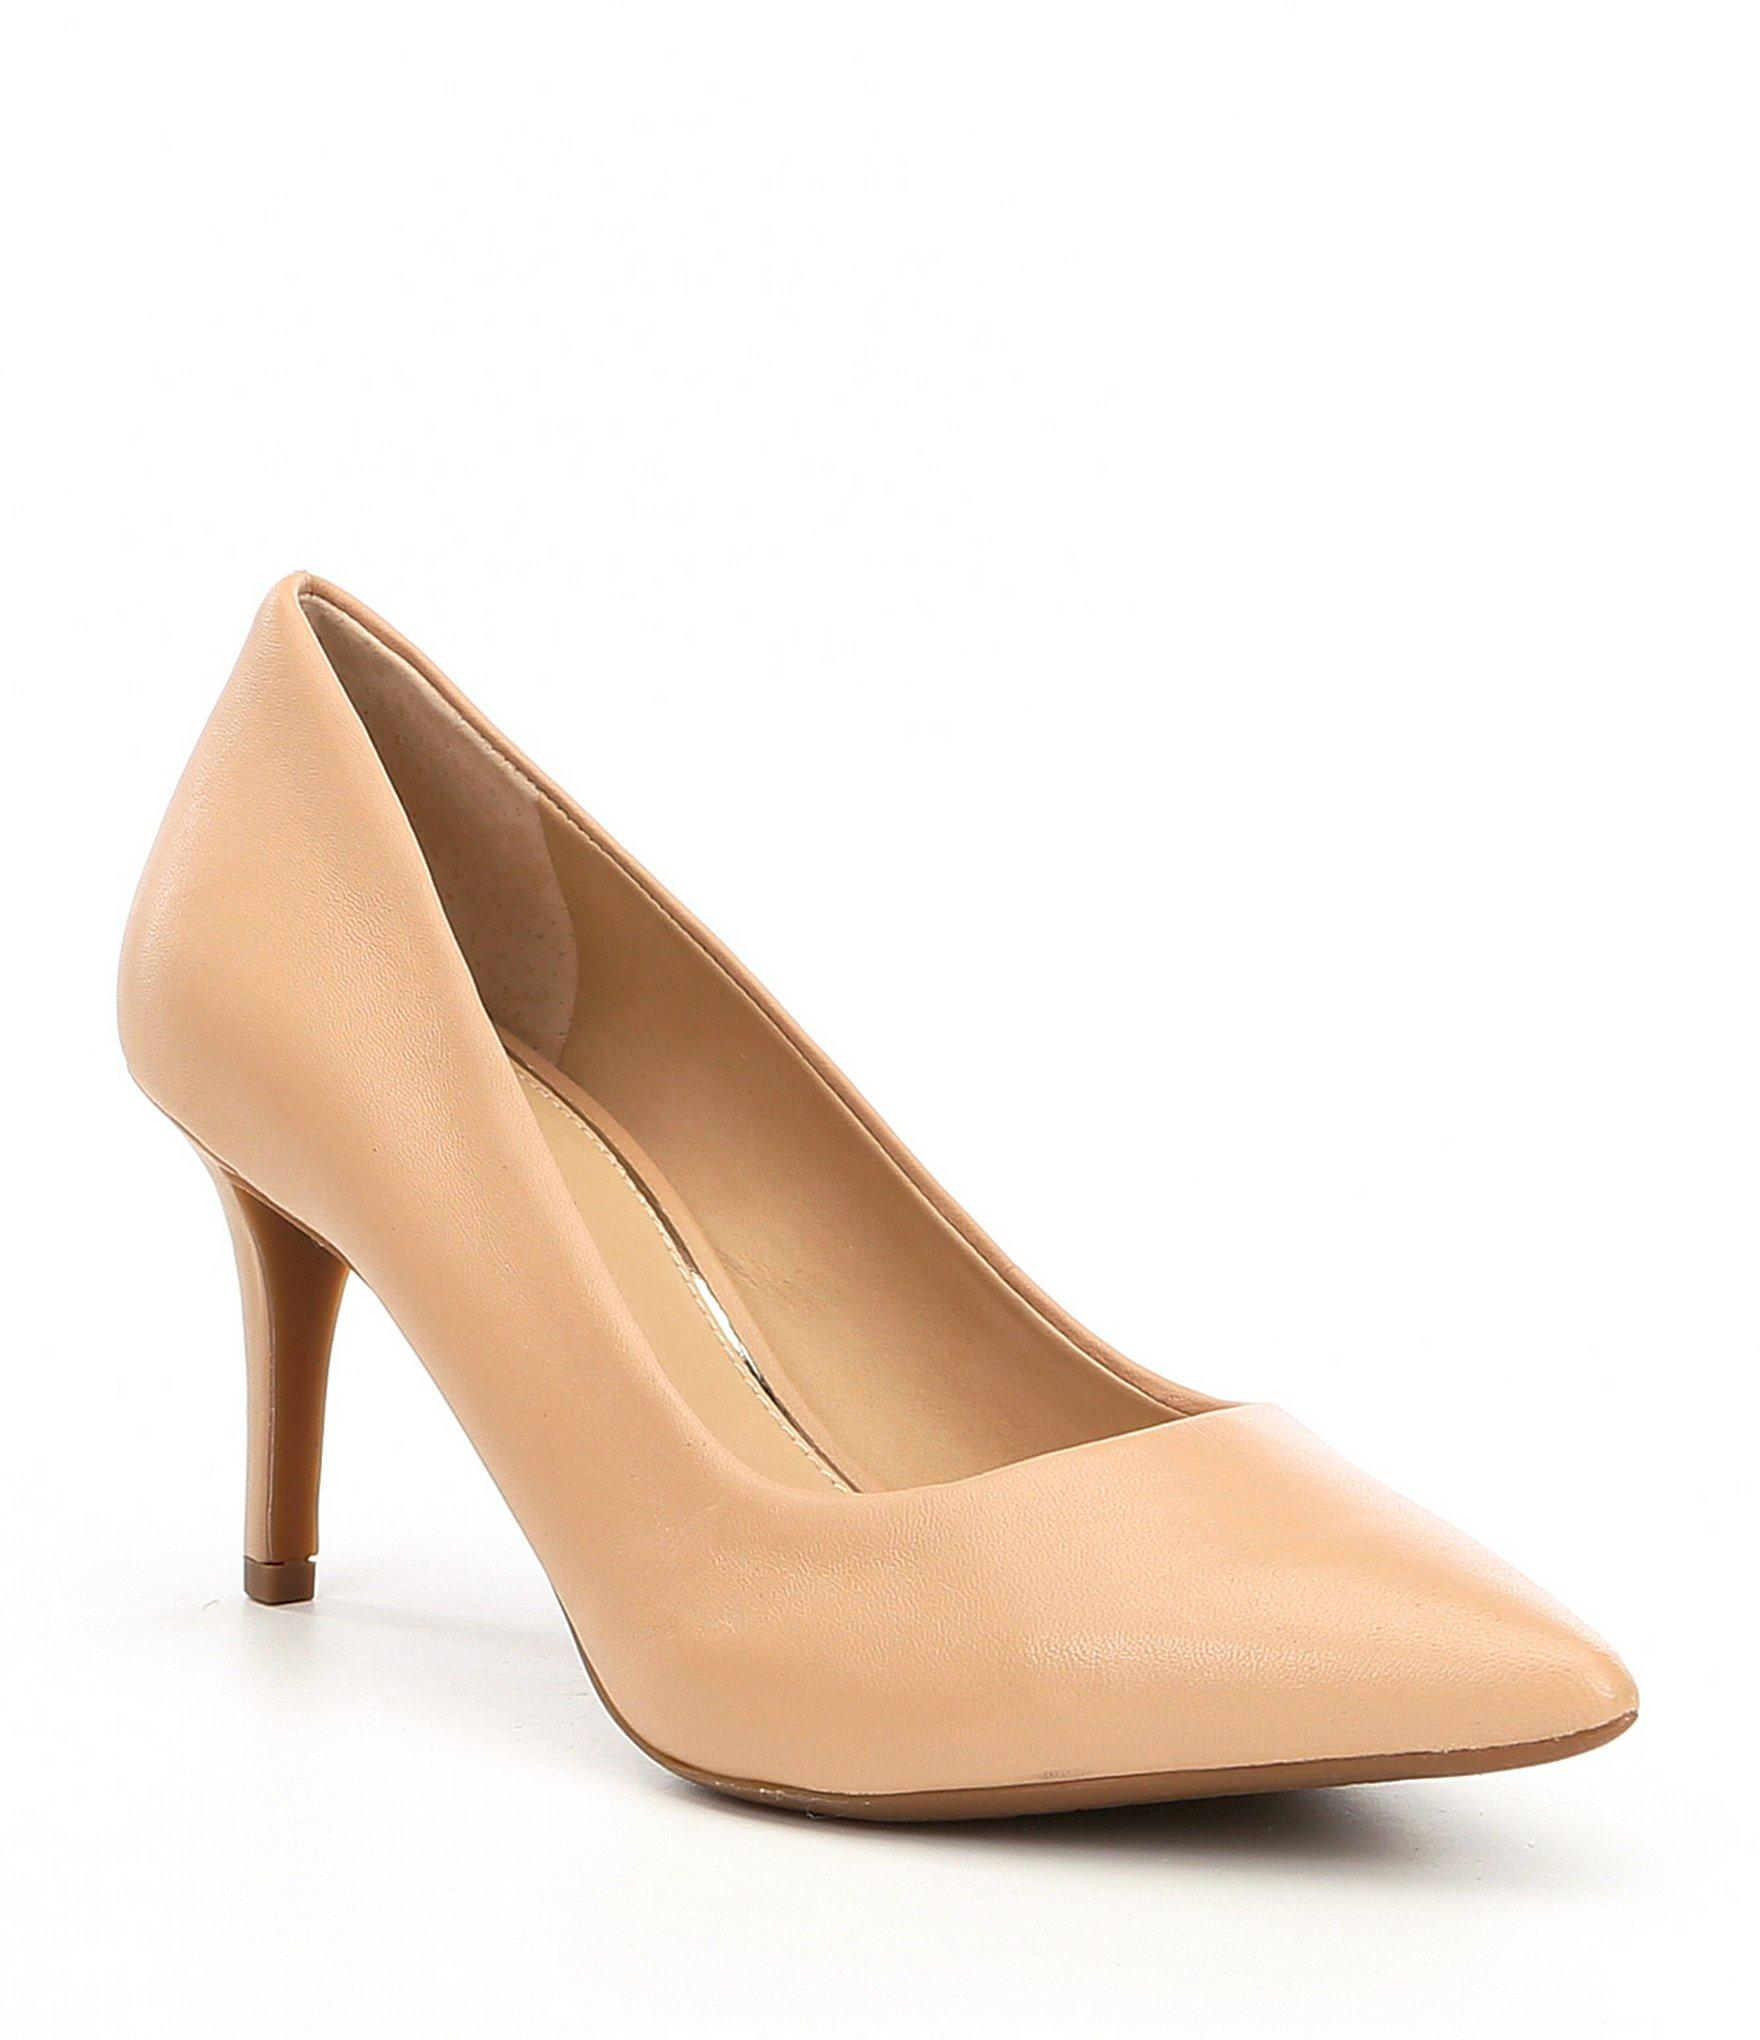 89e82598f88 Women's Natural Metilda Leather Pointy Toe Pumps